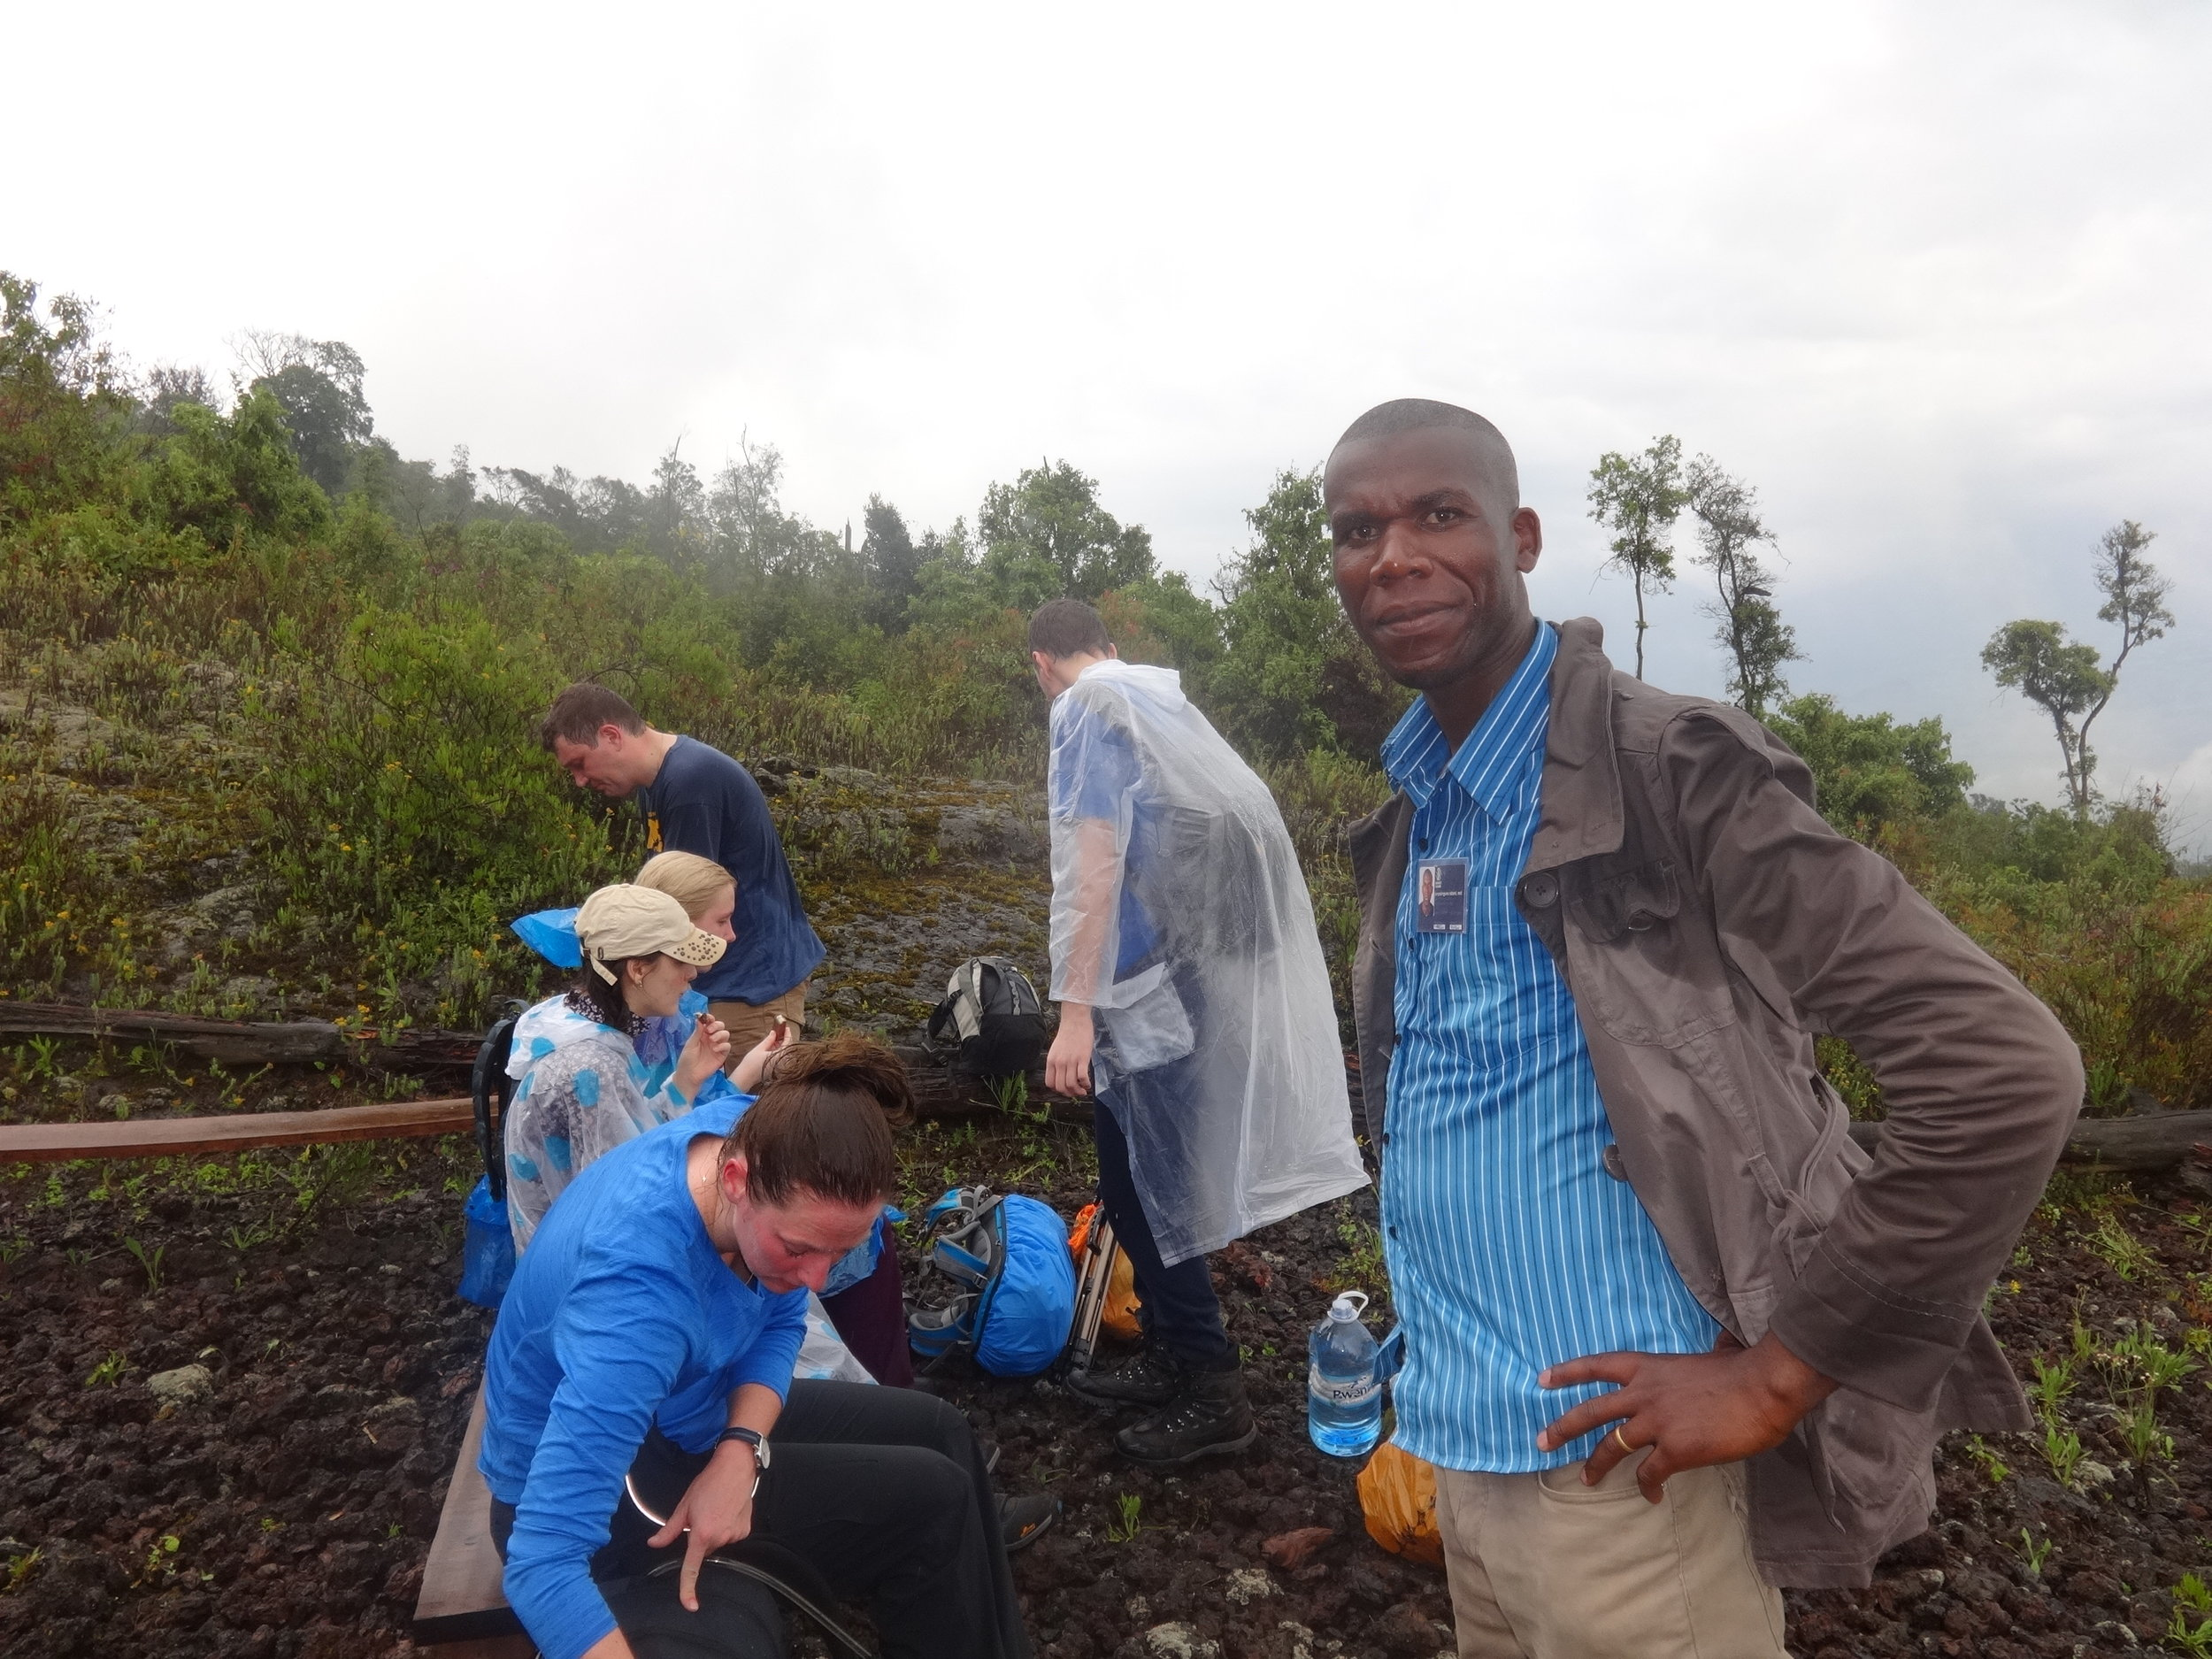 After awhile trekking upwards to the summit of nyiragongo volcano there came a downpour but good enough they were prepared.